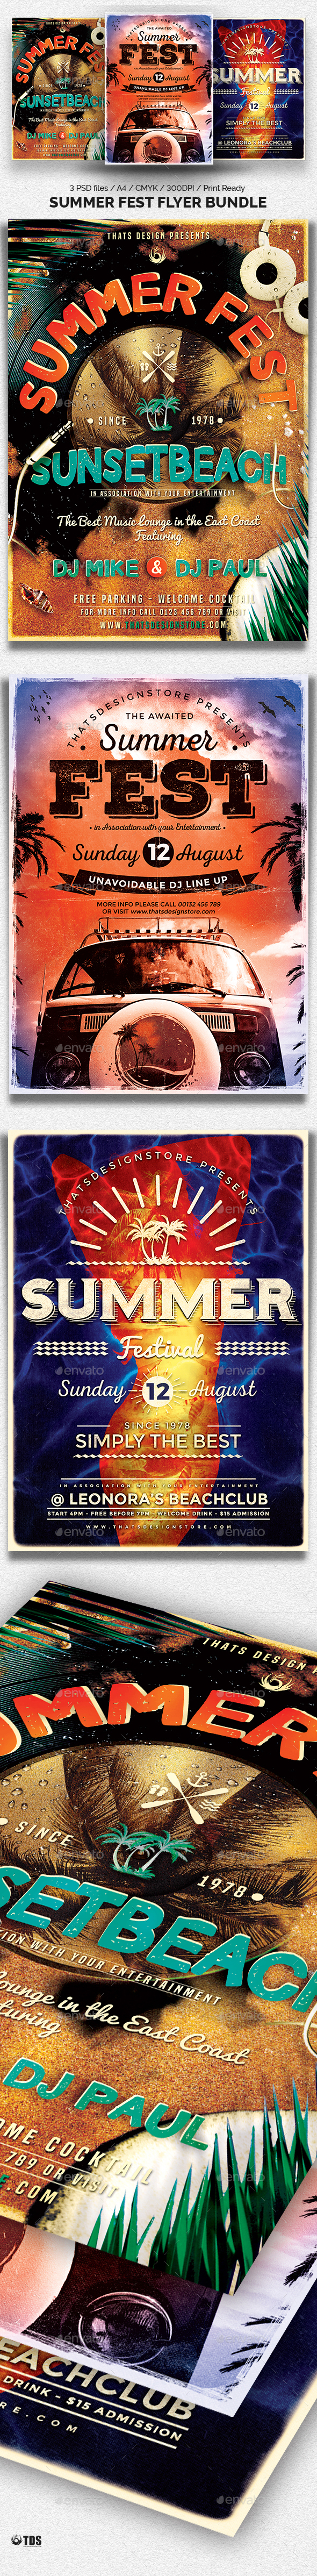 Summer Fest Flyer Bundle - Clubs & Parties Events